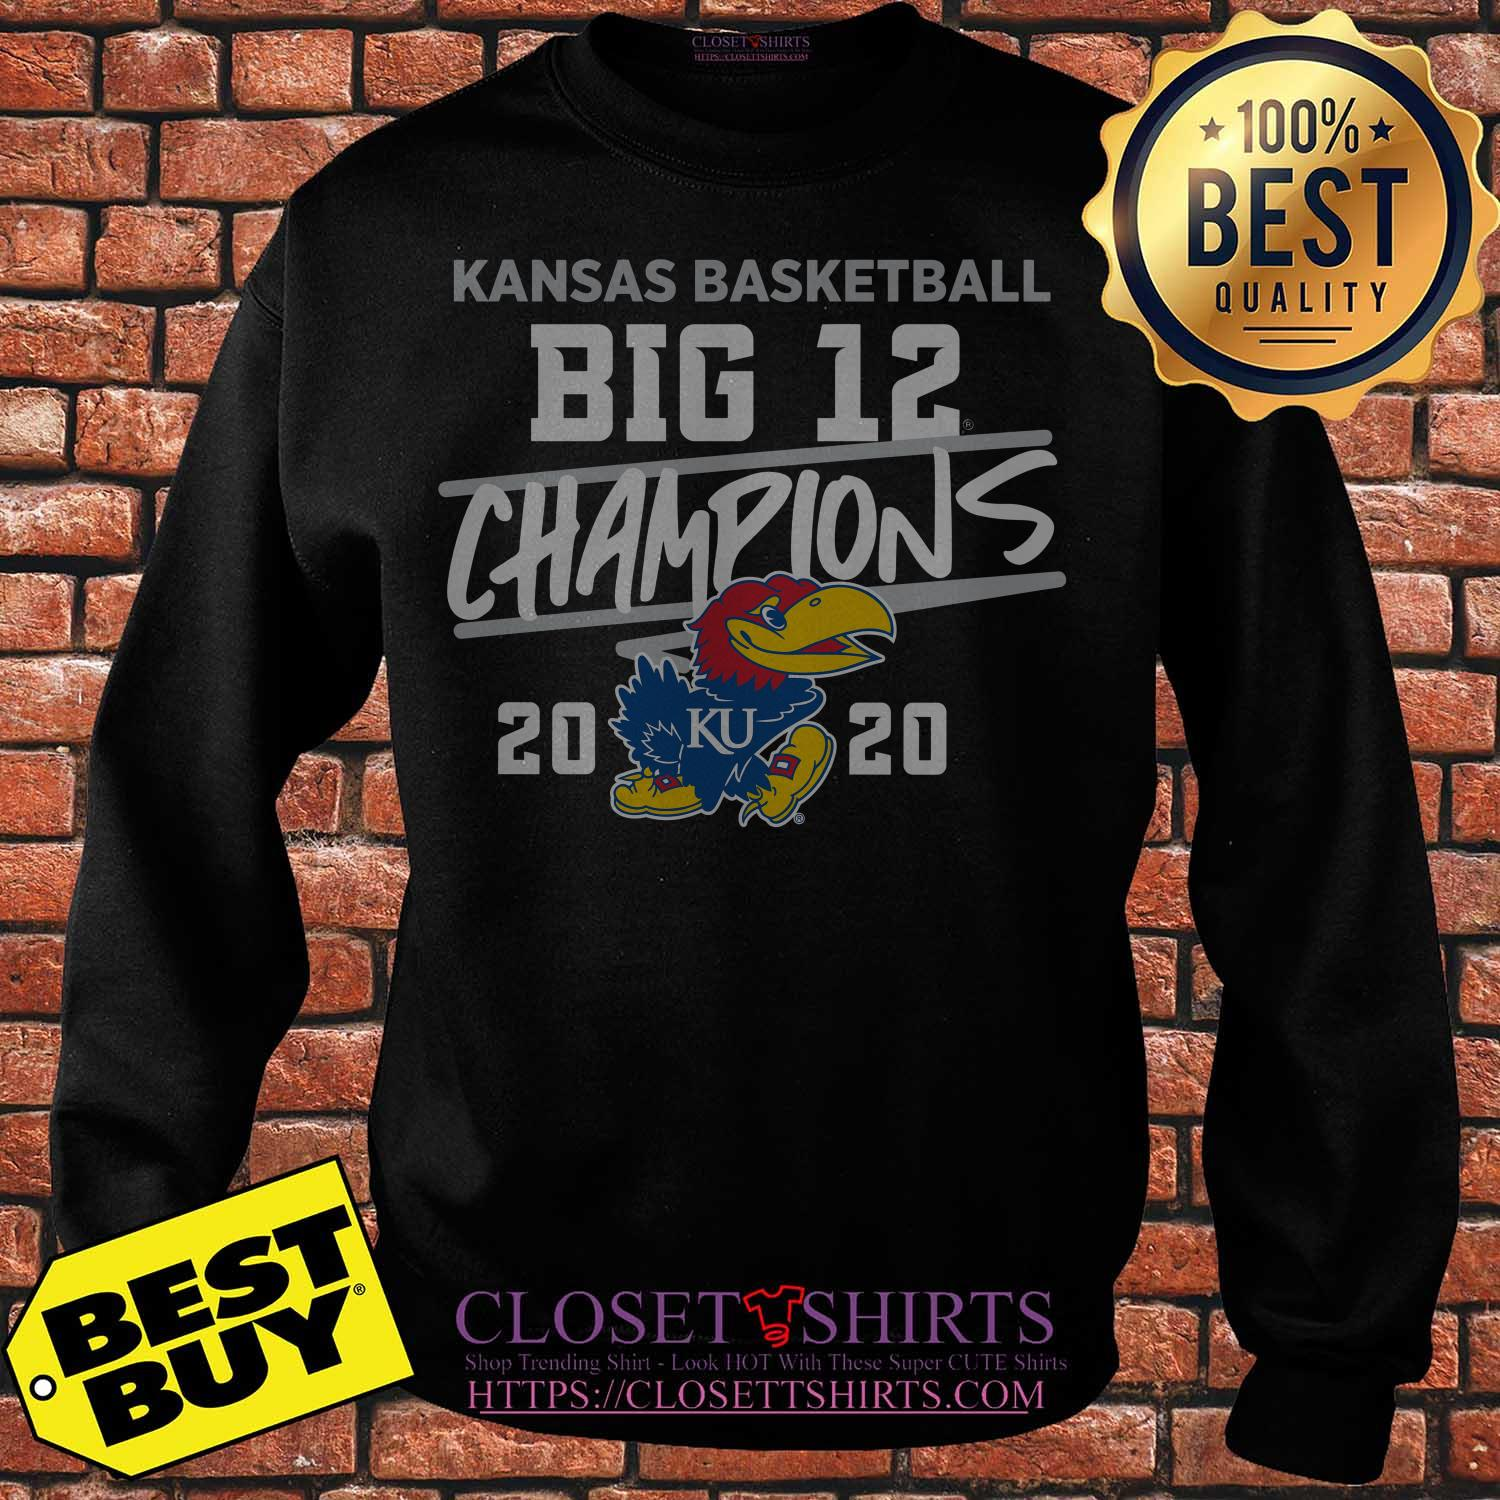 Kansas Jayhawks 2020 Big 12 Basketball Champions Sweater